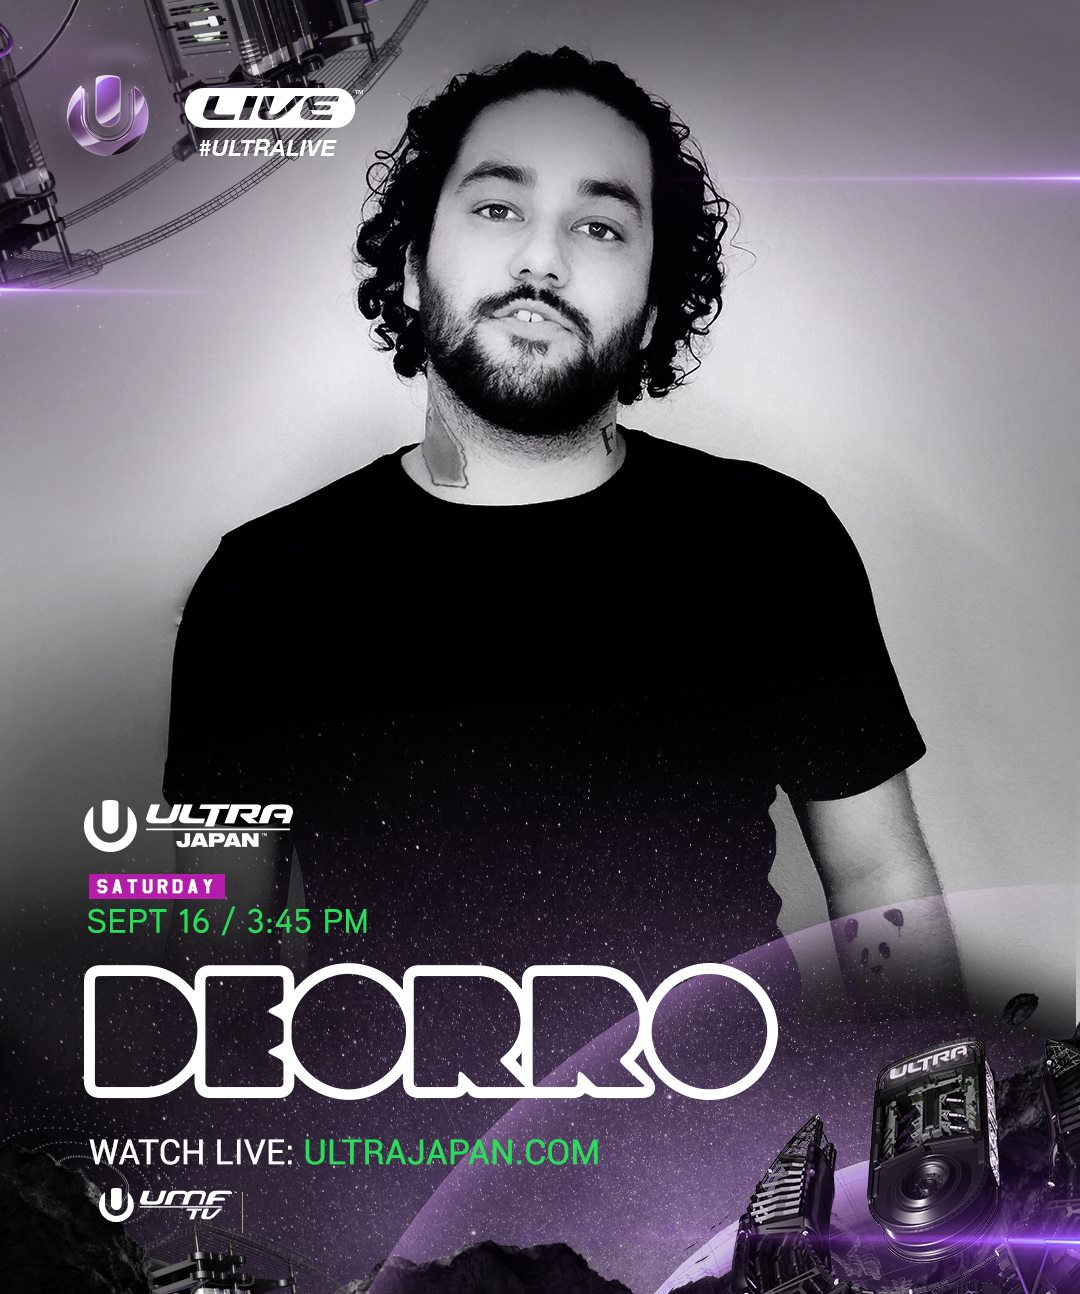 download → Deorro - live at Ultra Music Festival 2017 (Japan) - 16-Sep-2017